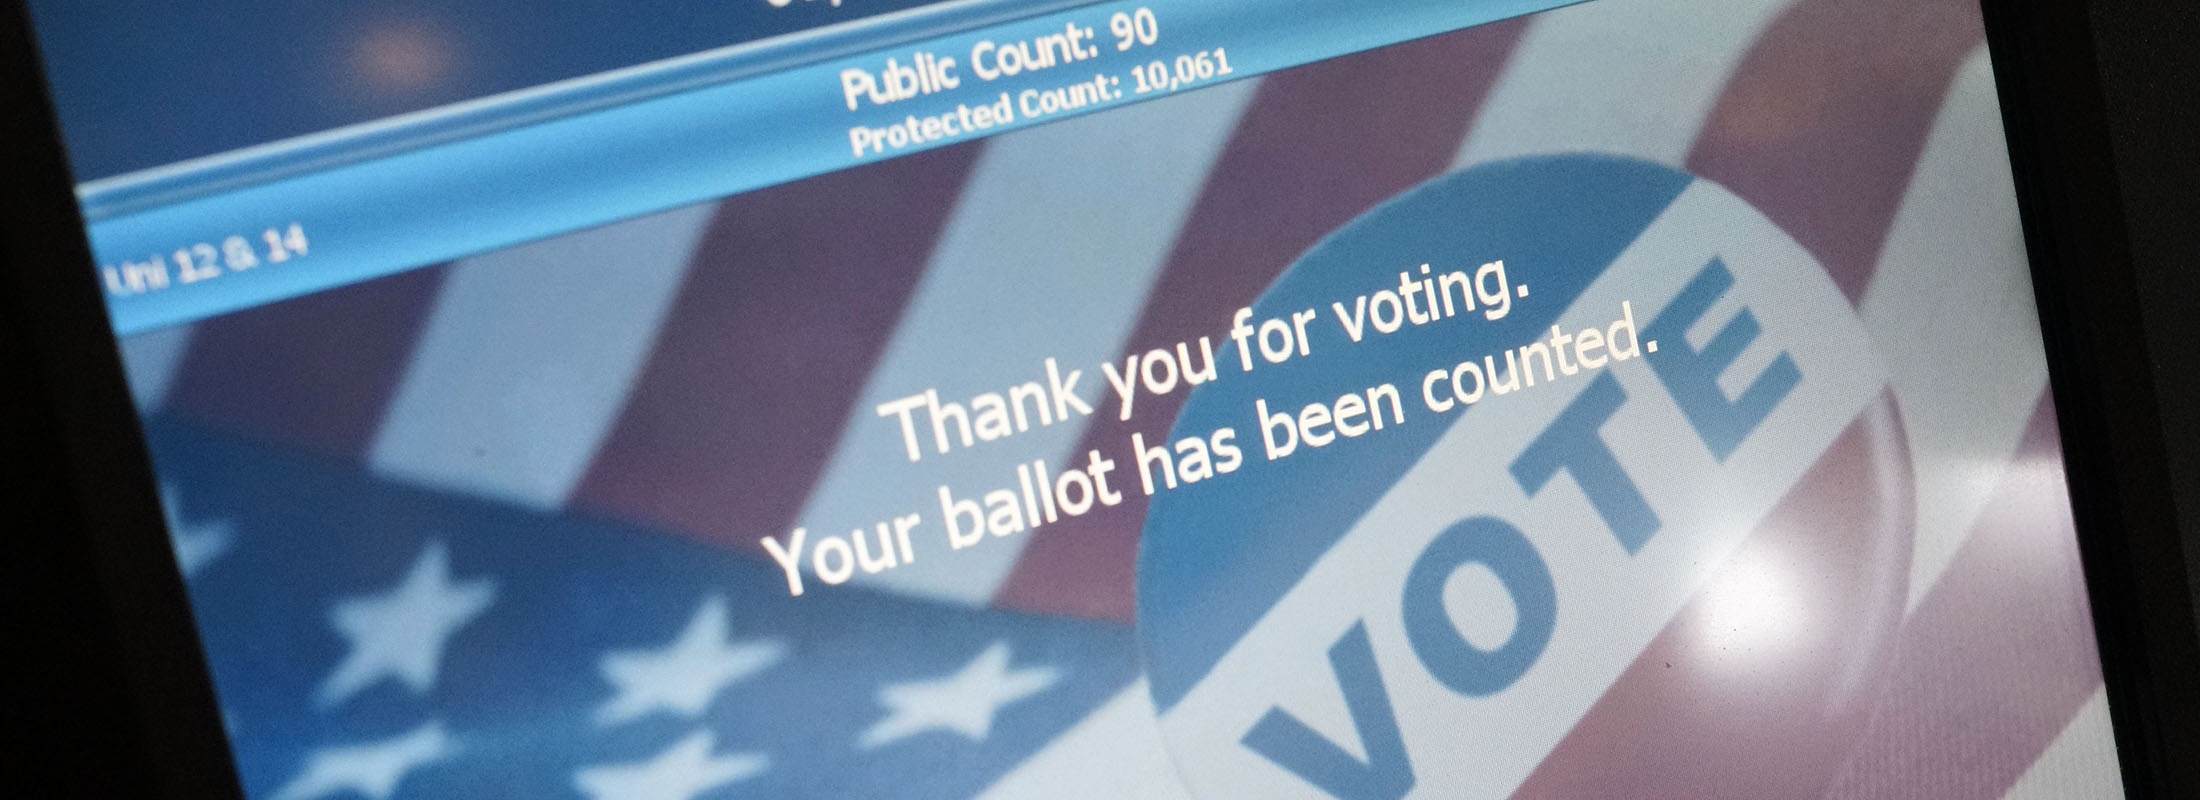 niagara county offers extended voter registration hours  u2013 the buffalo news